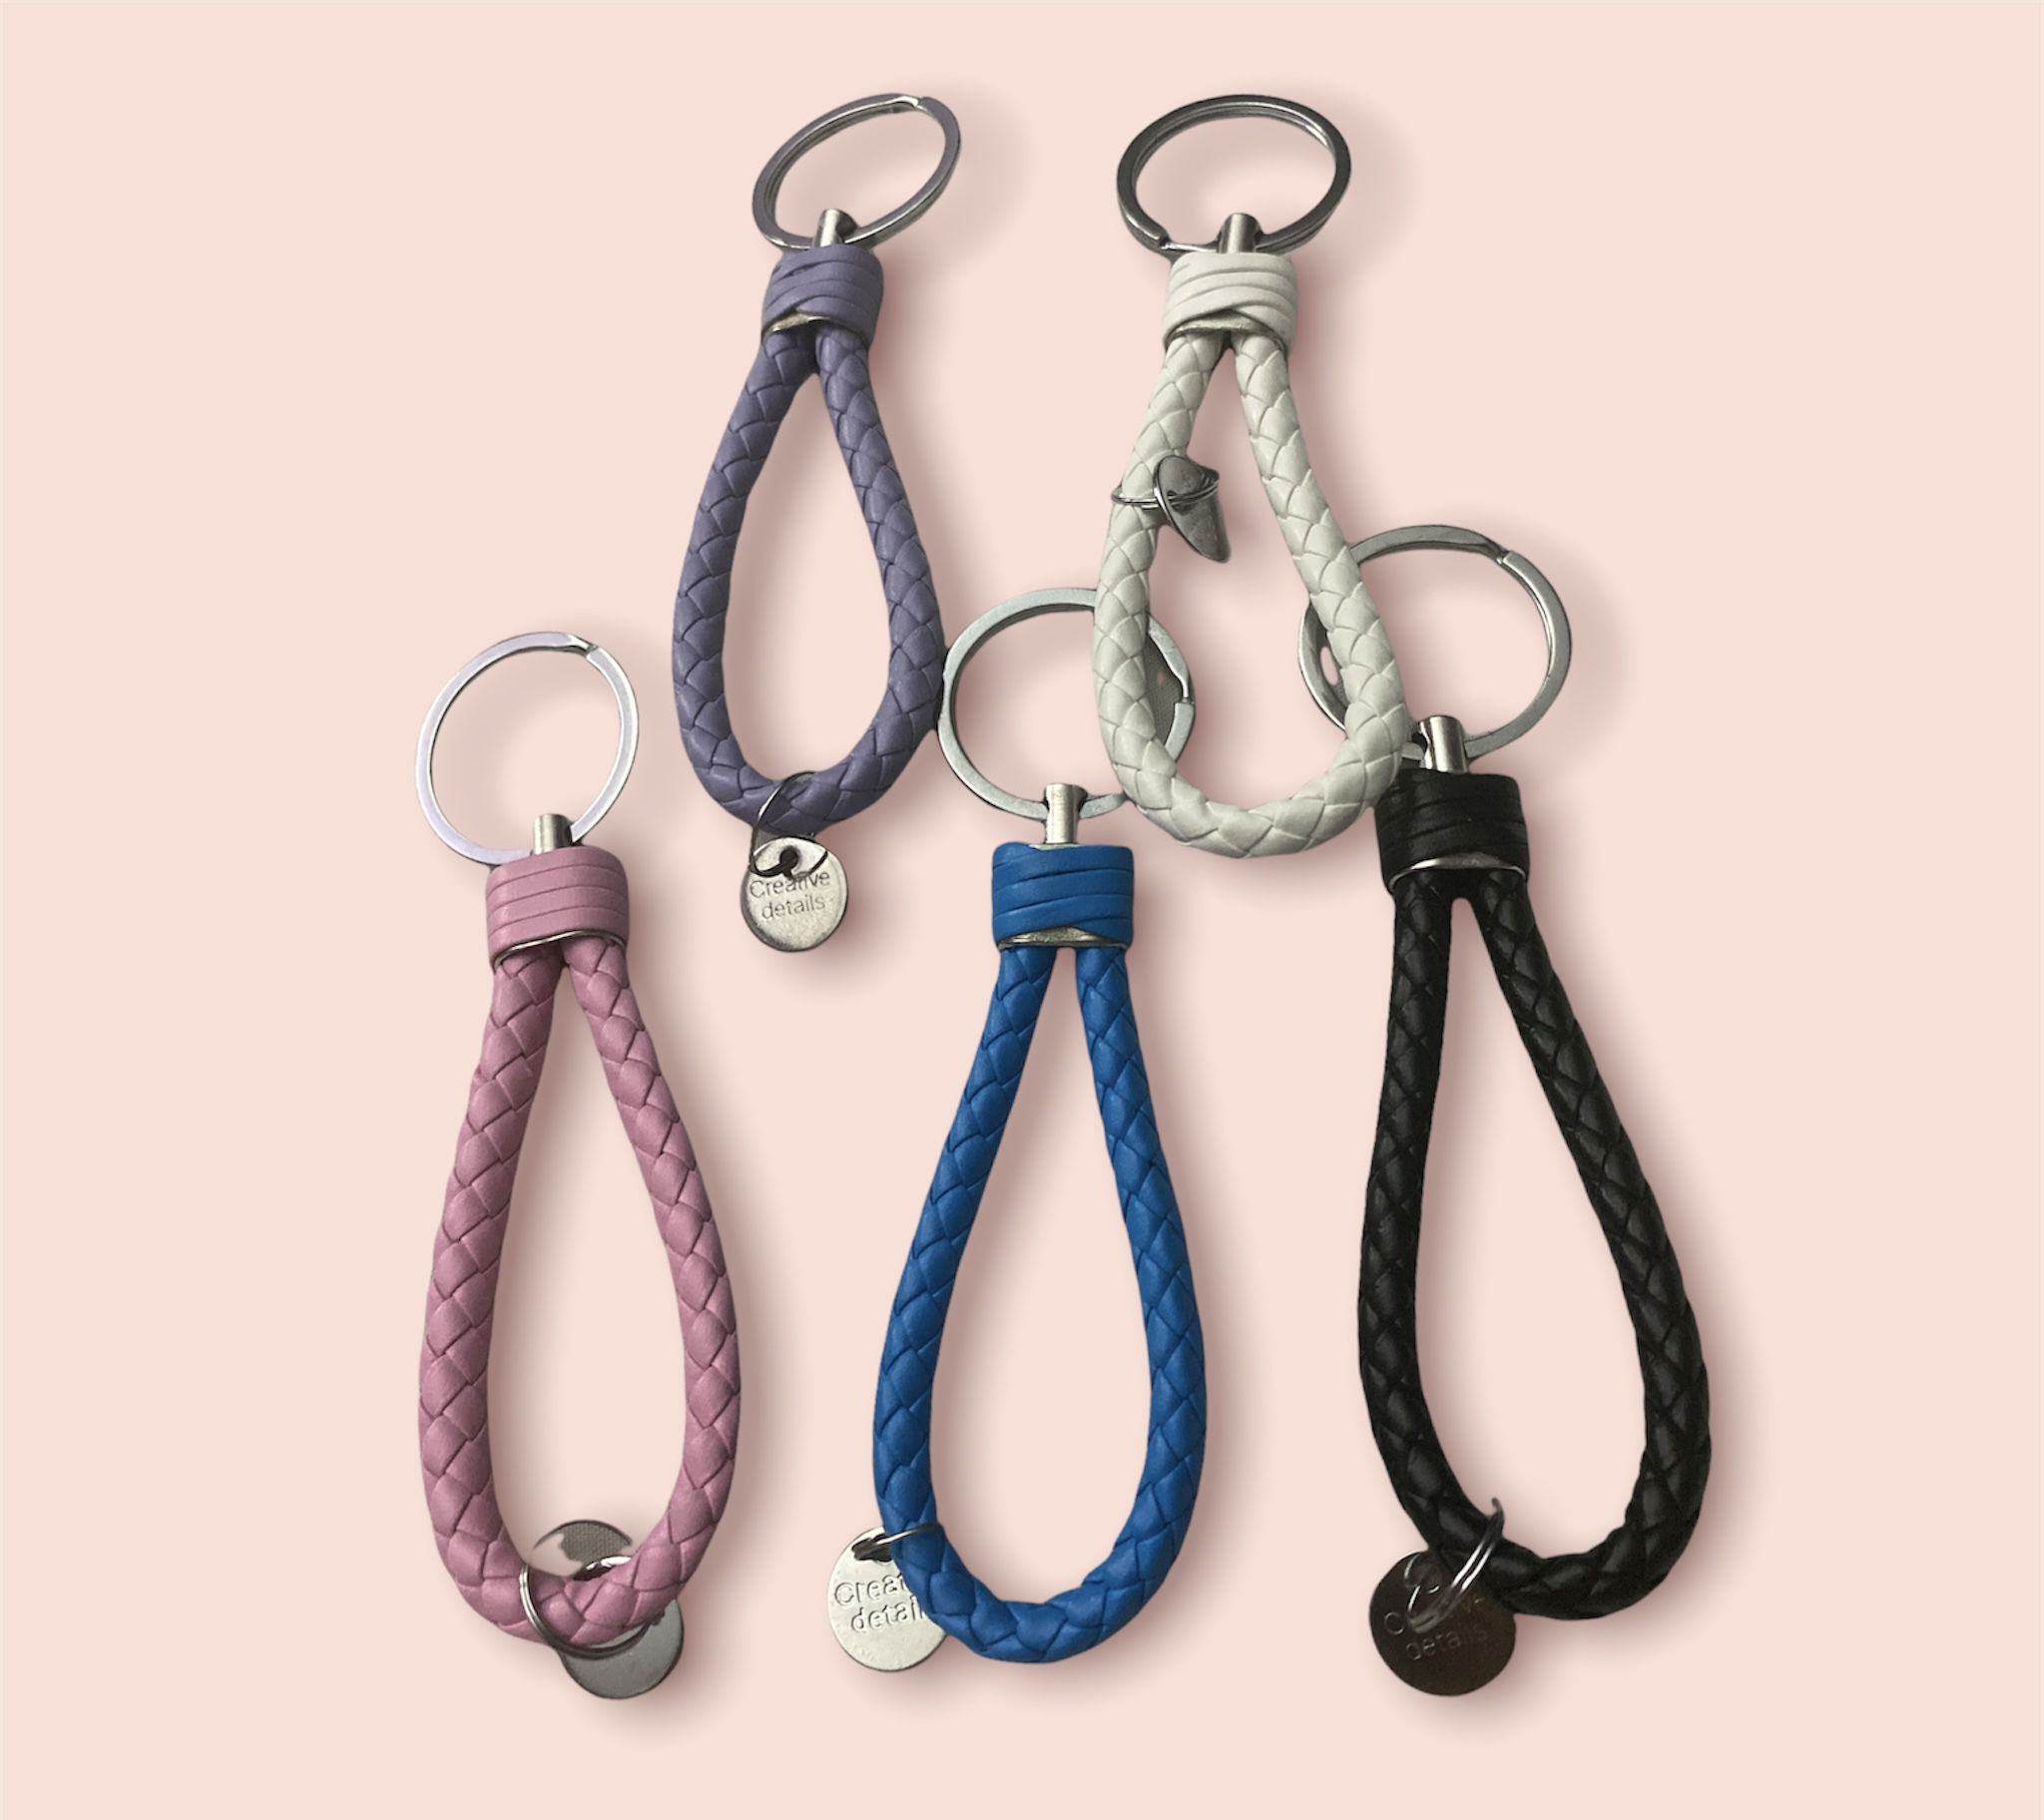 Leather Keychain Key Chain Ring Home Keyring Car Keychains for Women and Men